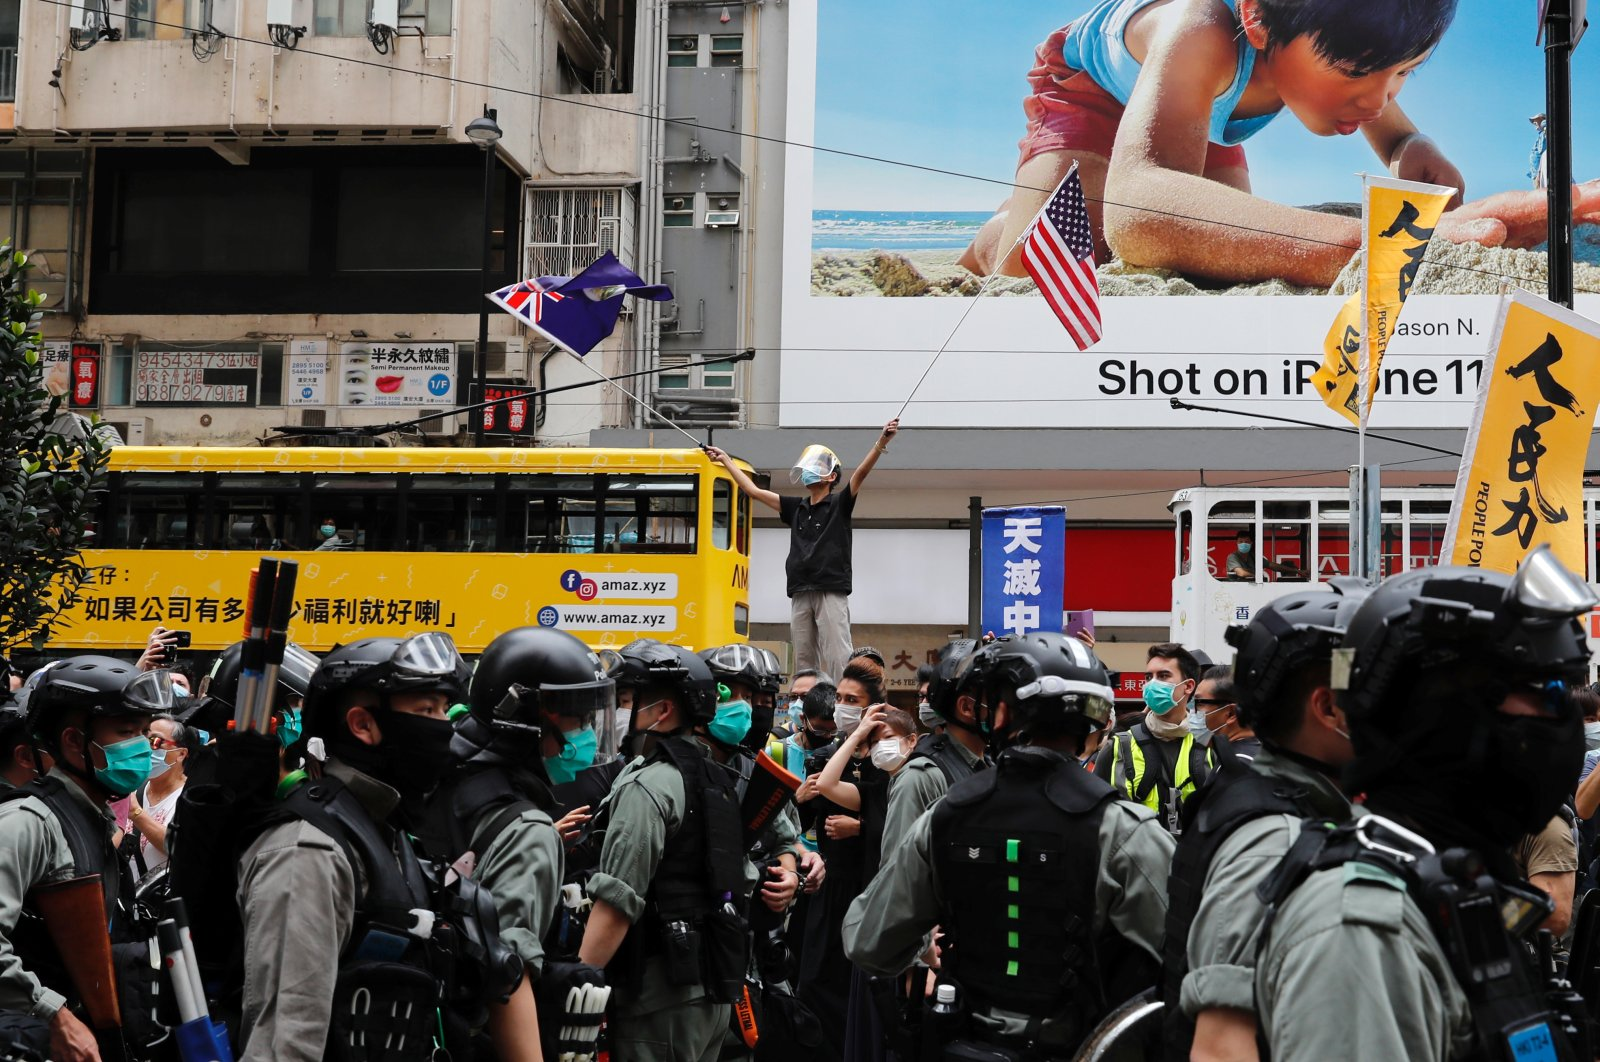 An anti-government protester waves the U.S. and the British colonial Hong Kong flags as riot police walk past during a march against Beijing's plans to impose national security legislation in Hong Kong, May 24, 2020. (Reuters Photo)